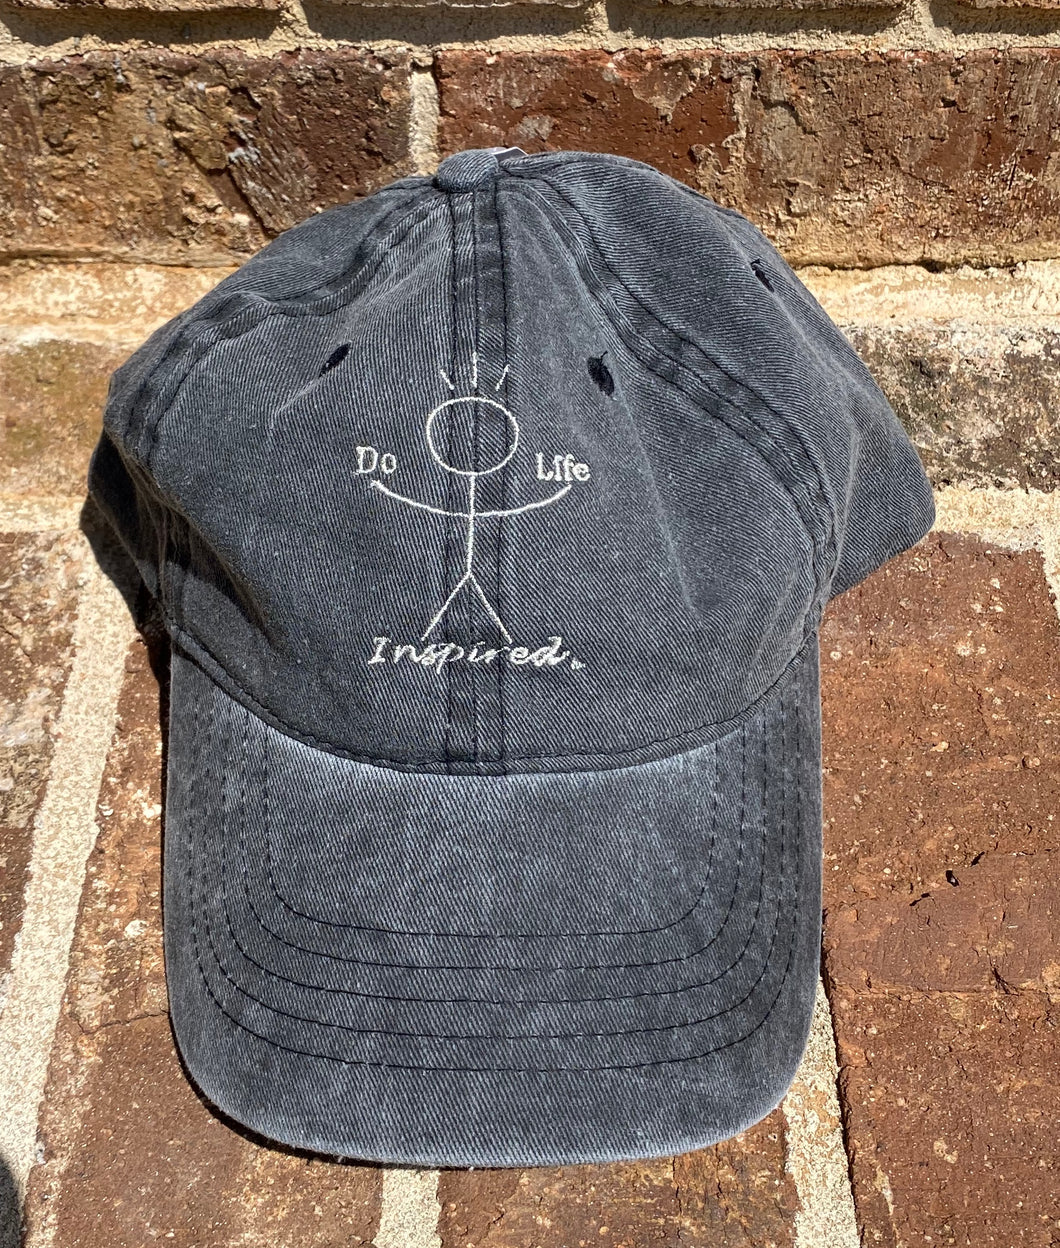 Washed Twill Hat - Do Life Inspired